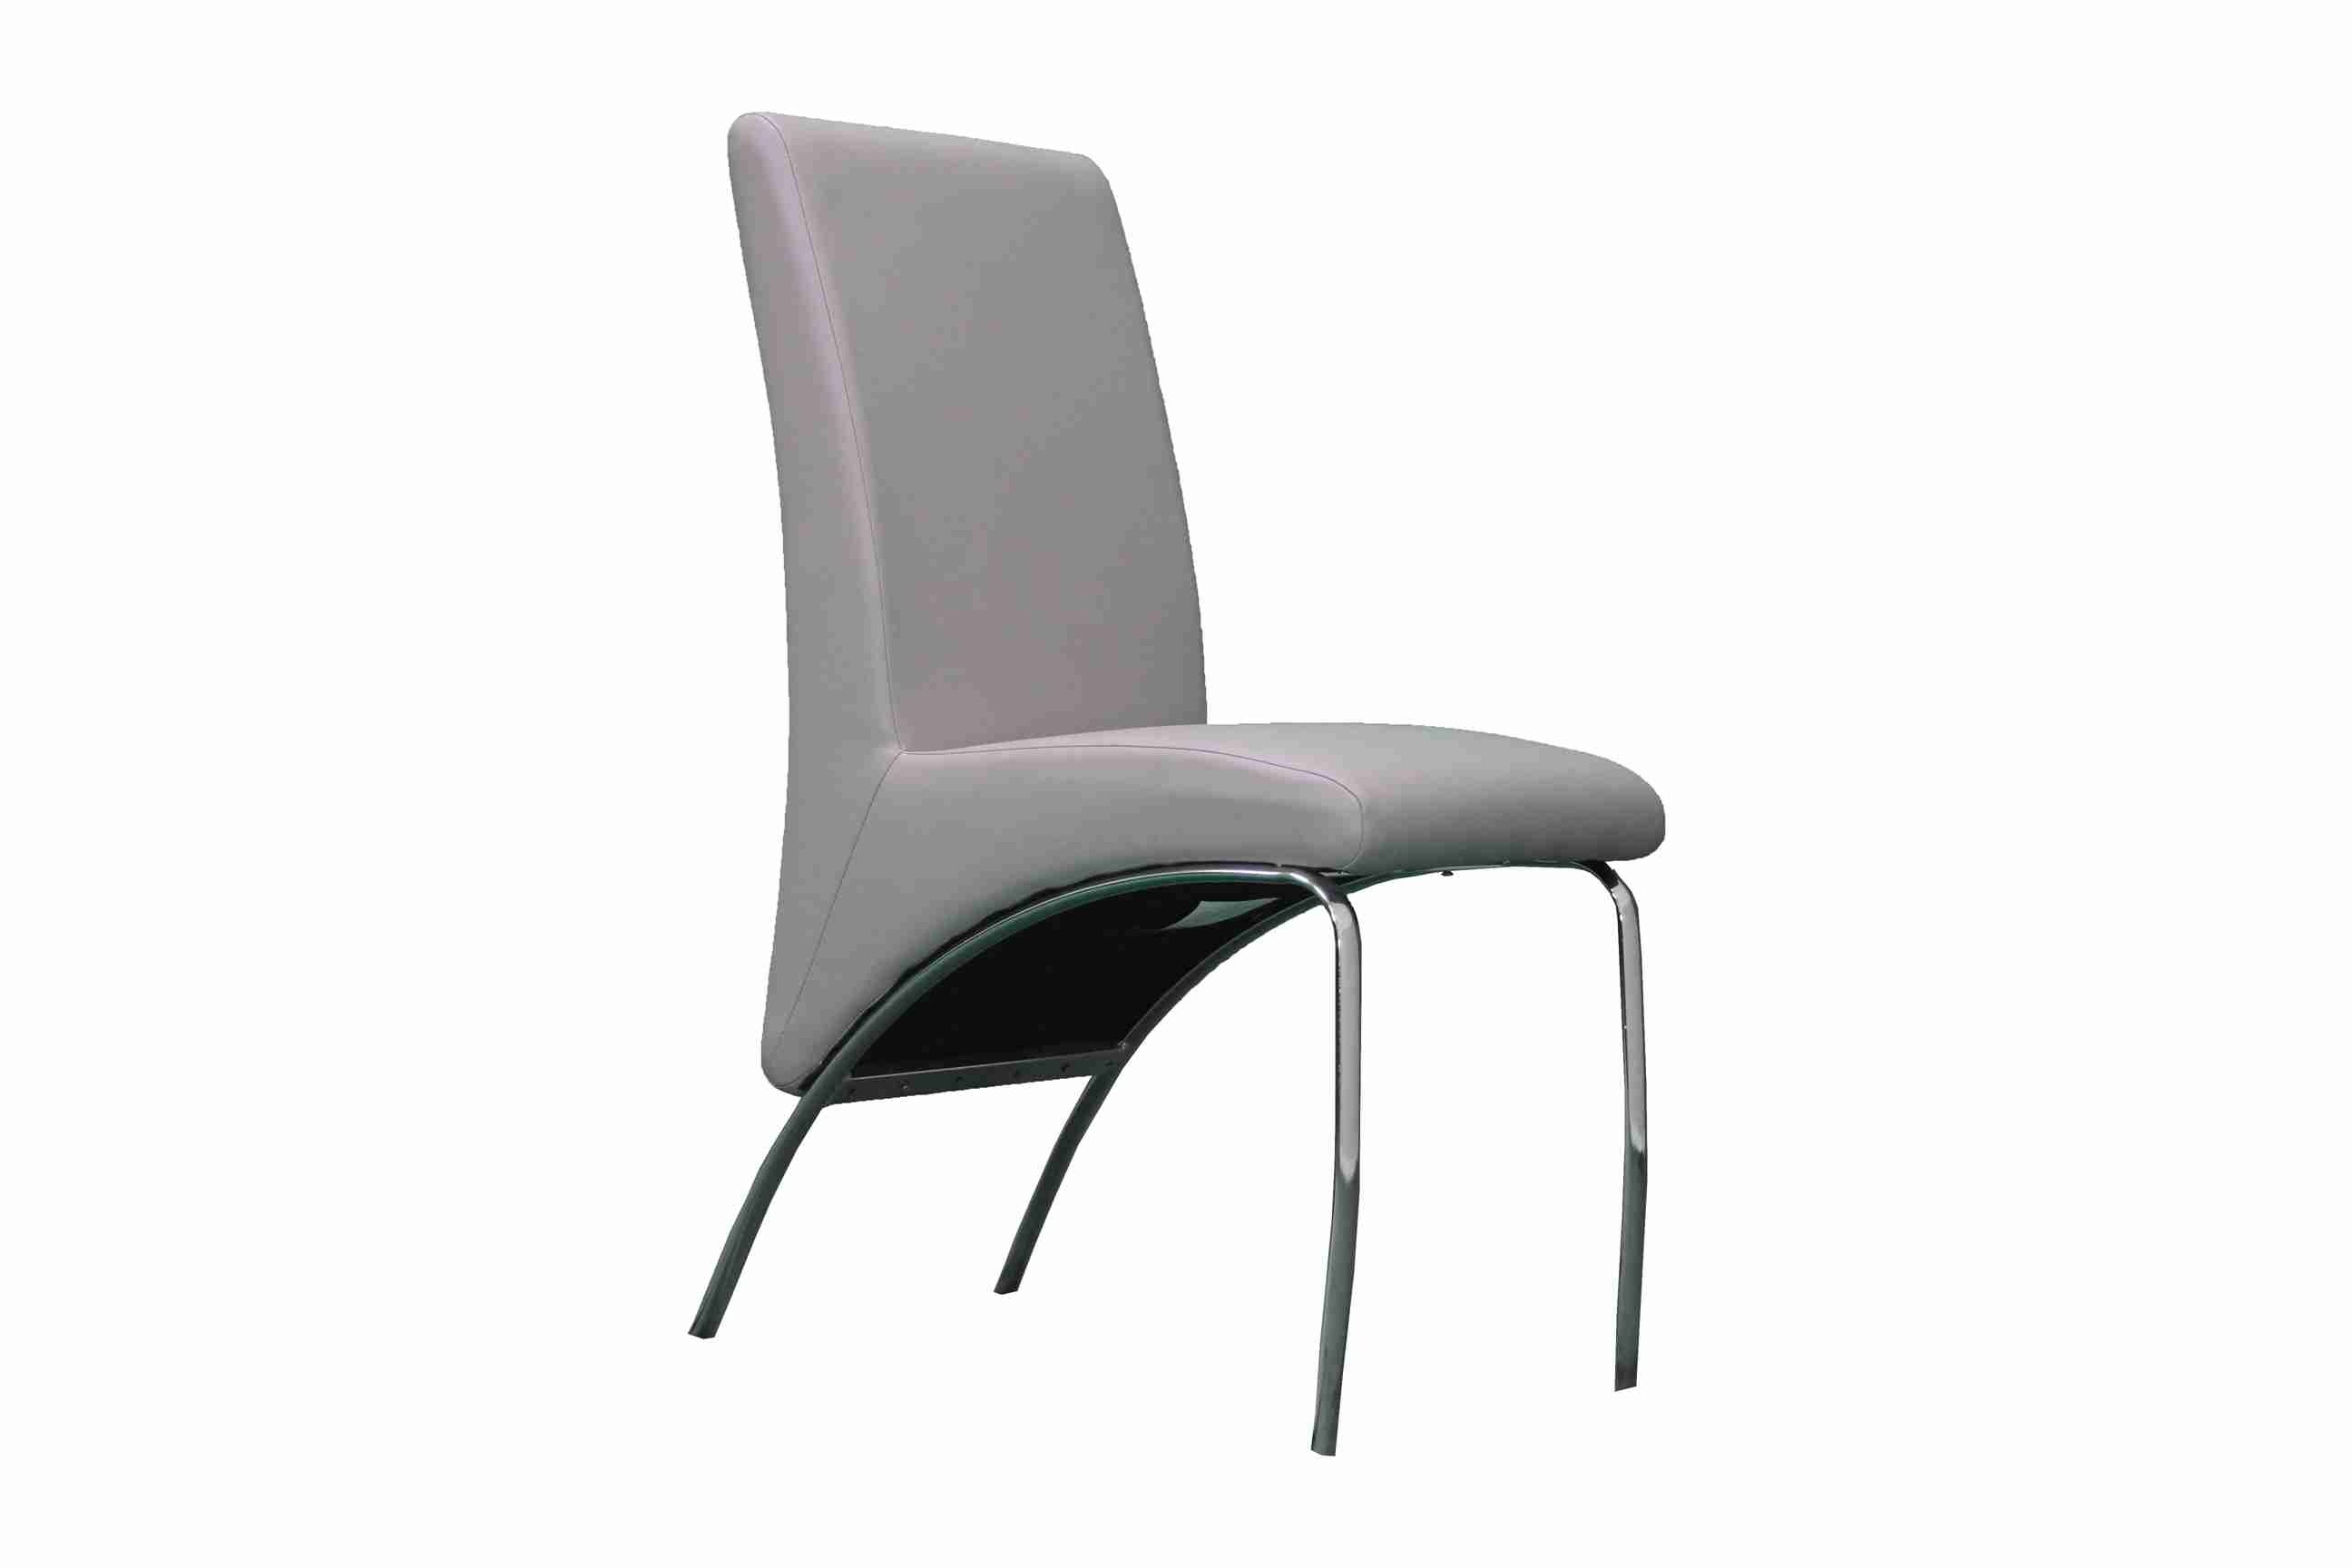 Side Chair PU Leather in Gray (Set of 2) - UH-958-PU-GRAY